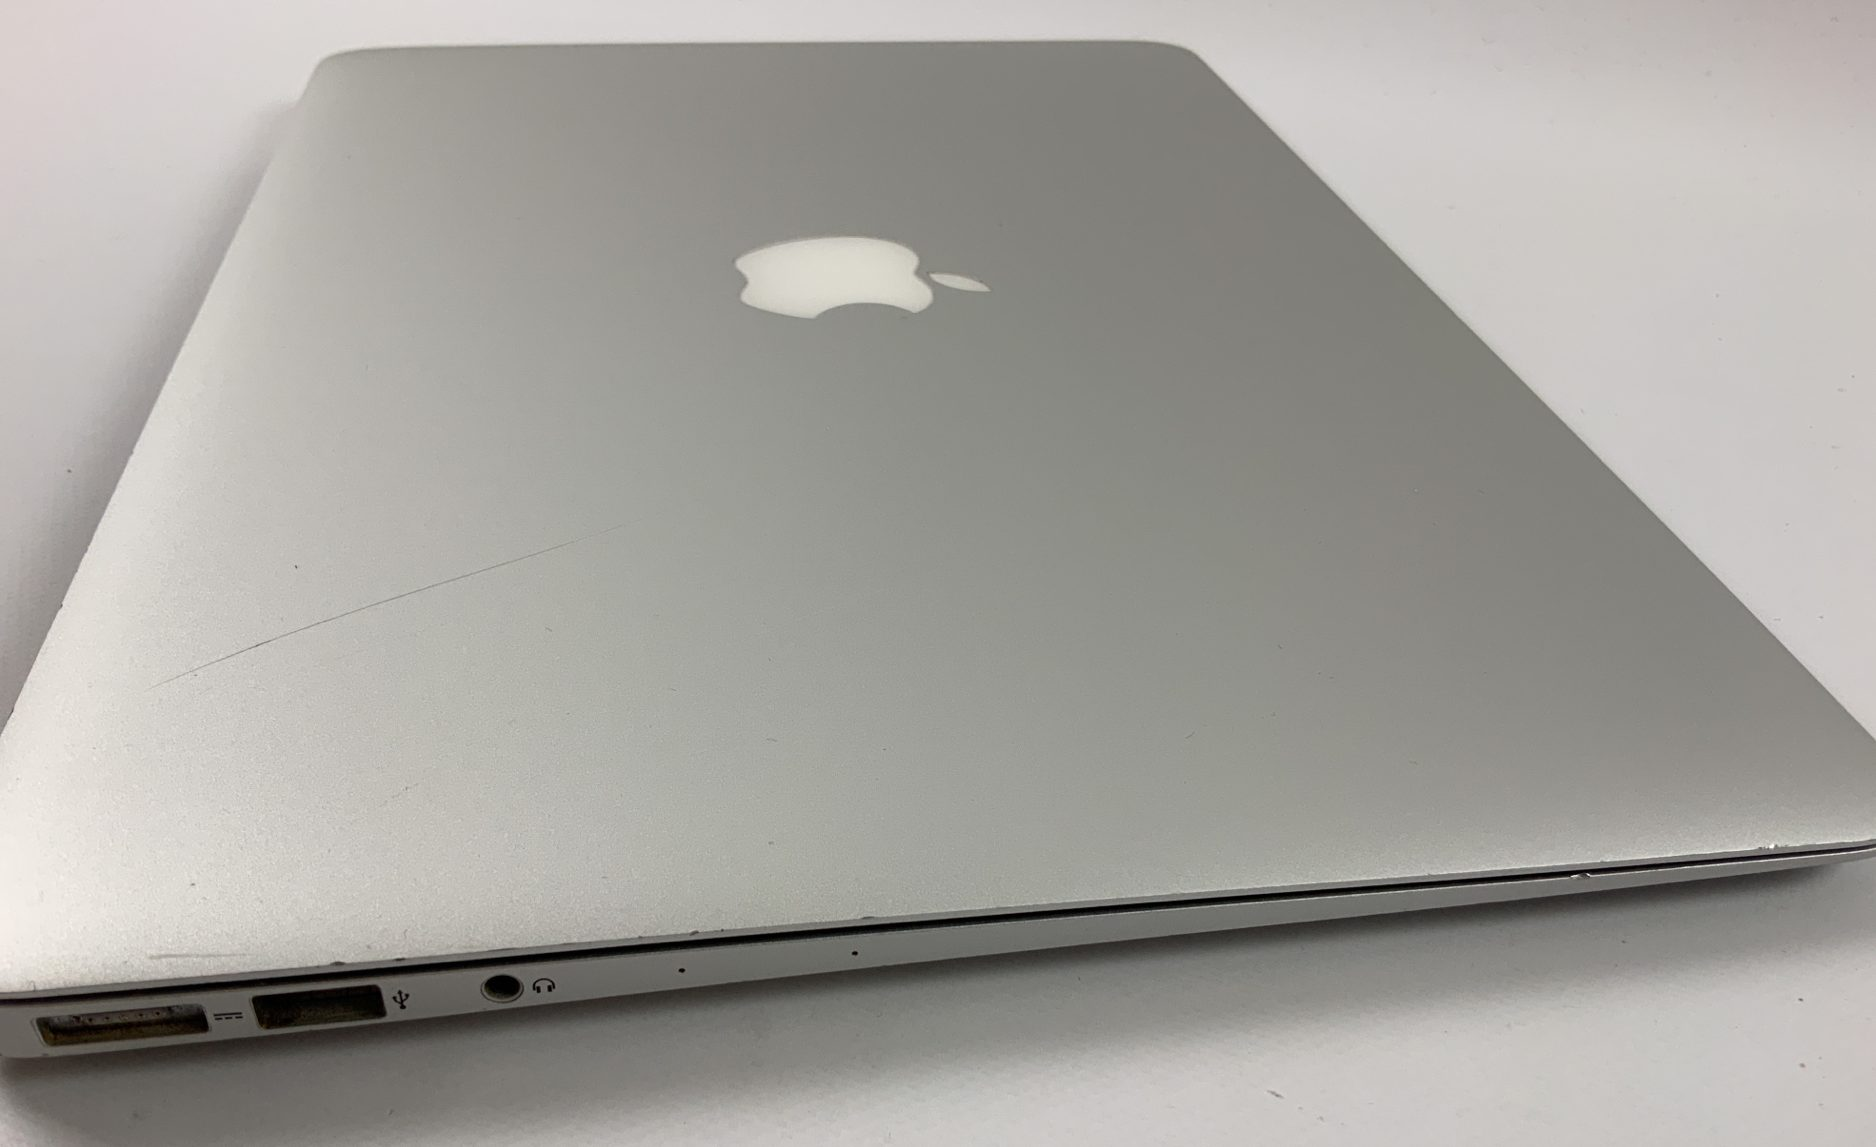 "MacBook Air 13"" Early 2015 (Intel Core i5 1.6 GHz 4 GB RAM 128 GB SSD), Intel Core i5 1.6 GHz, 4 GB RAM, 128 GB SSD, Kuva 3"